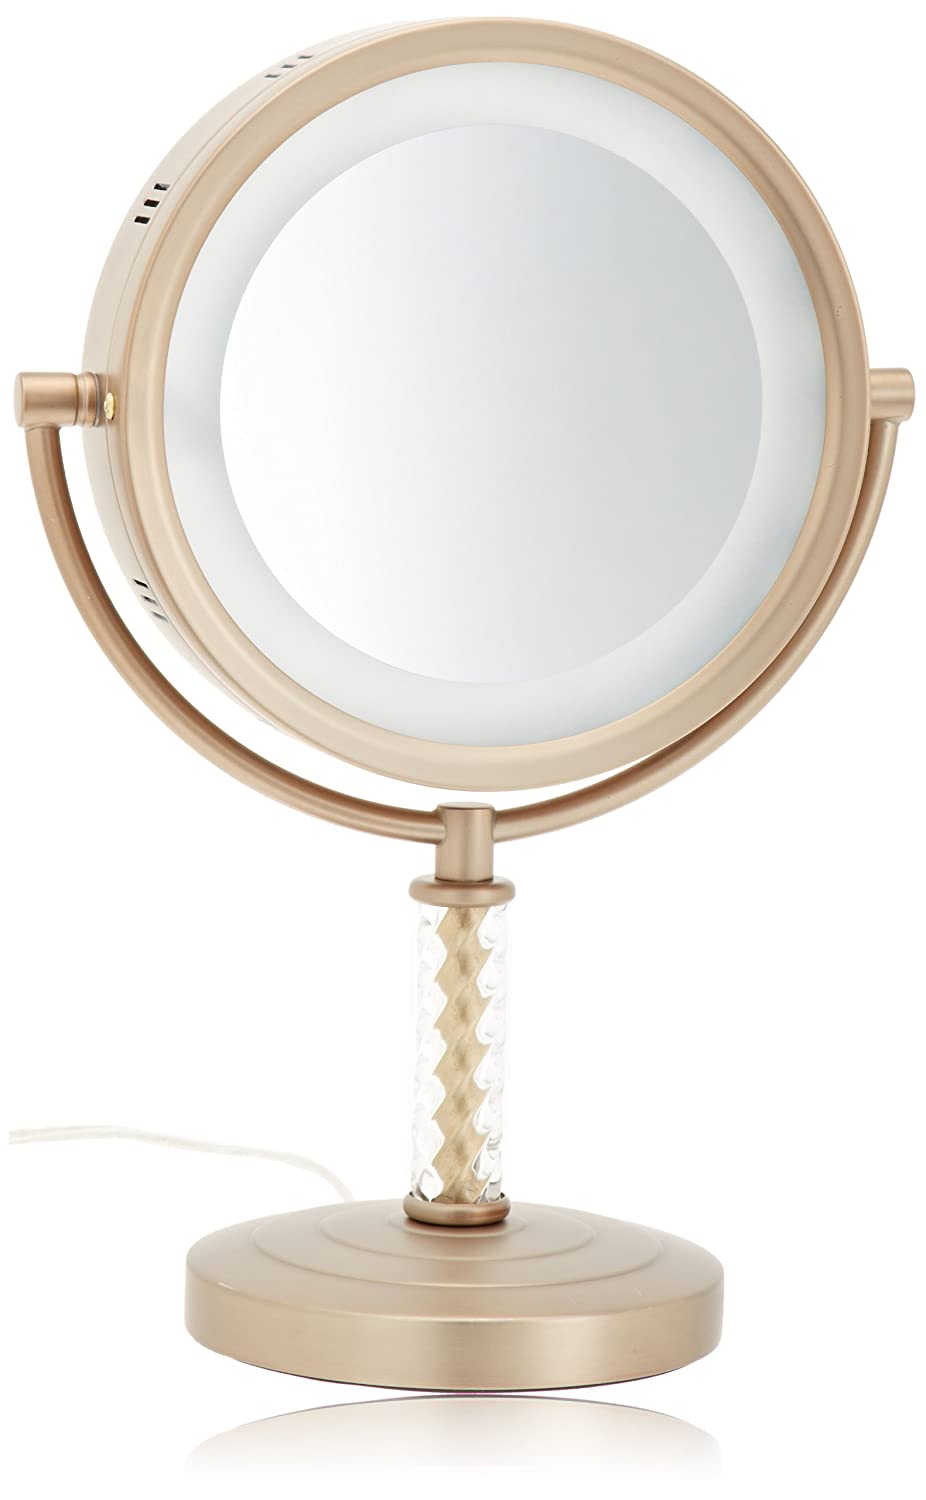 Jerdon HL856BC 8-Inch Tabletop Two-Sided Swivel Halo Lighted Vanity Mirror with 6x Magnification, 14-Inch Height, Brushed Brass Finish